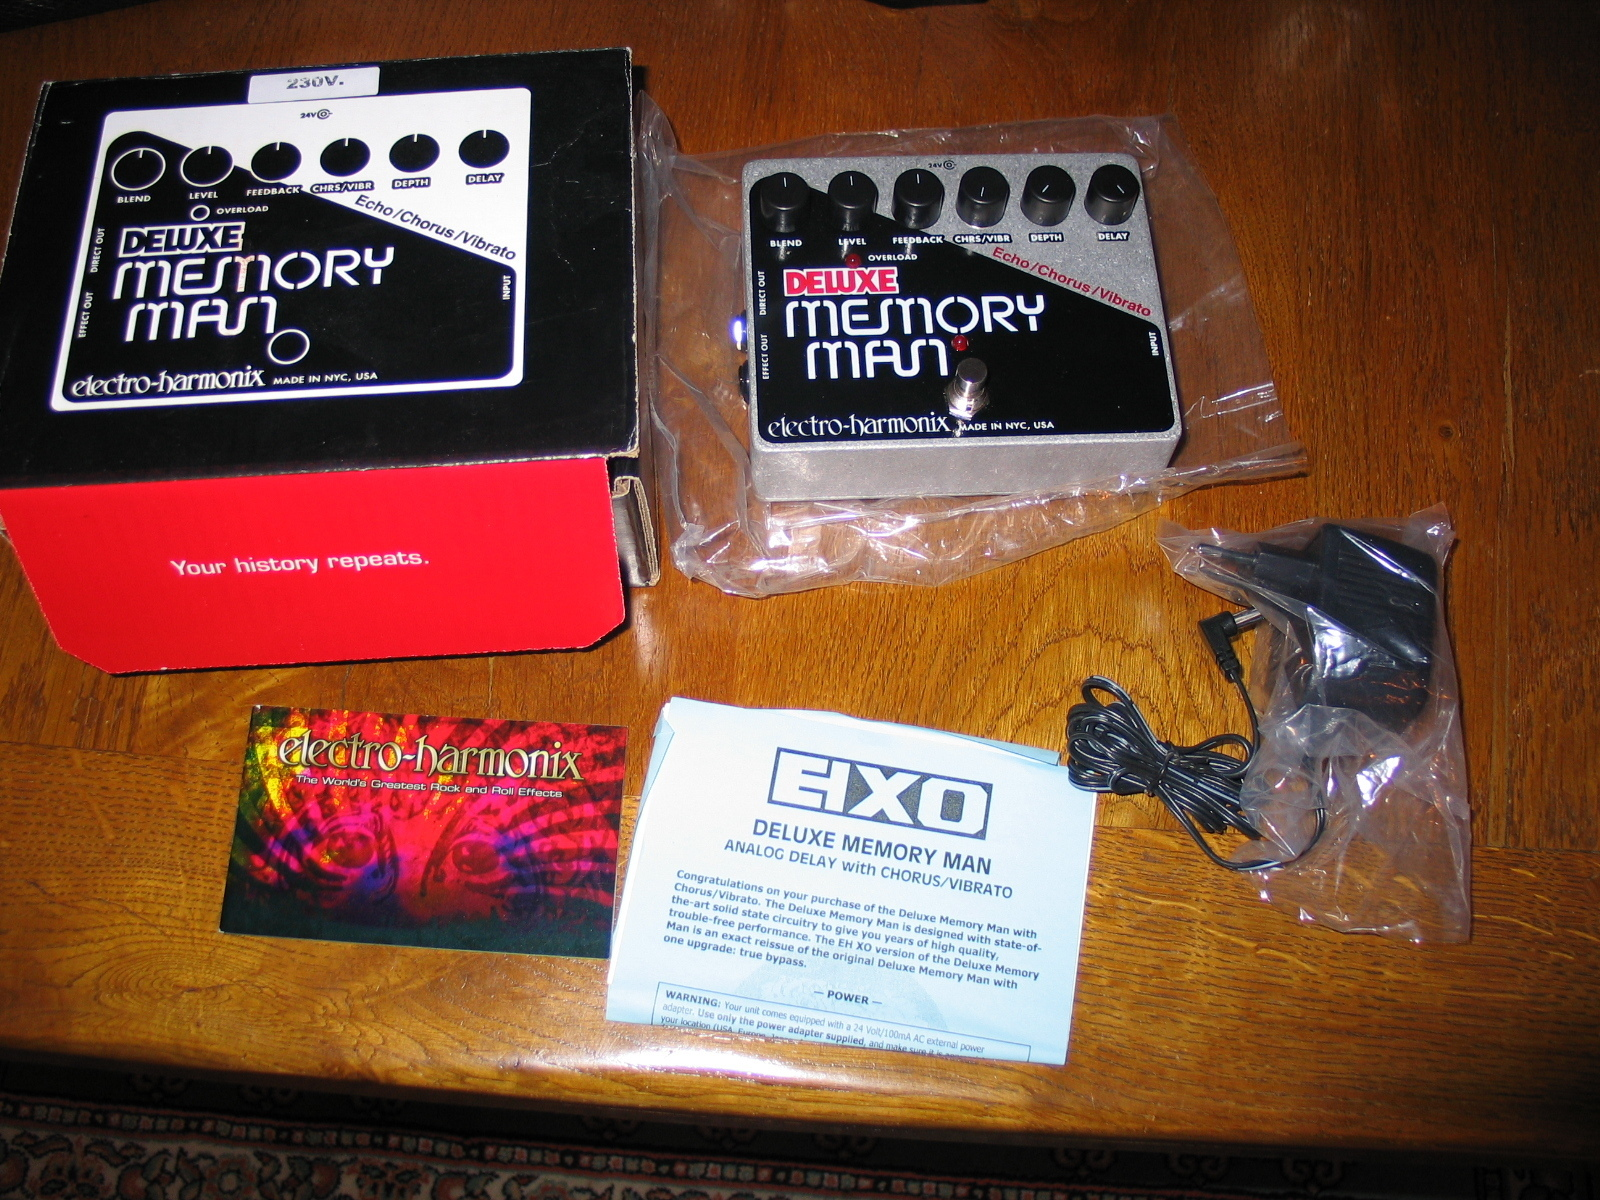 dating electro harmonix memory man My search ended with the electro-harmonix memory man deluxe  i'm not dating anyone's daughter  best analog delay pedal for analog synths: memory man deluxe .